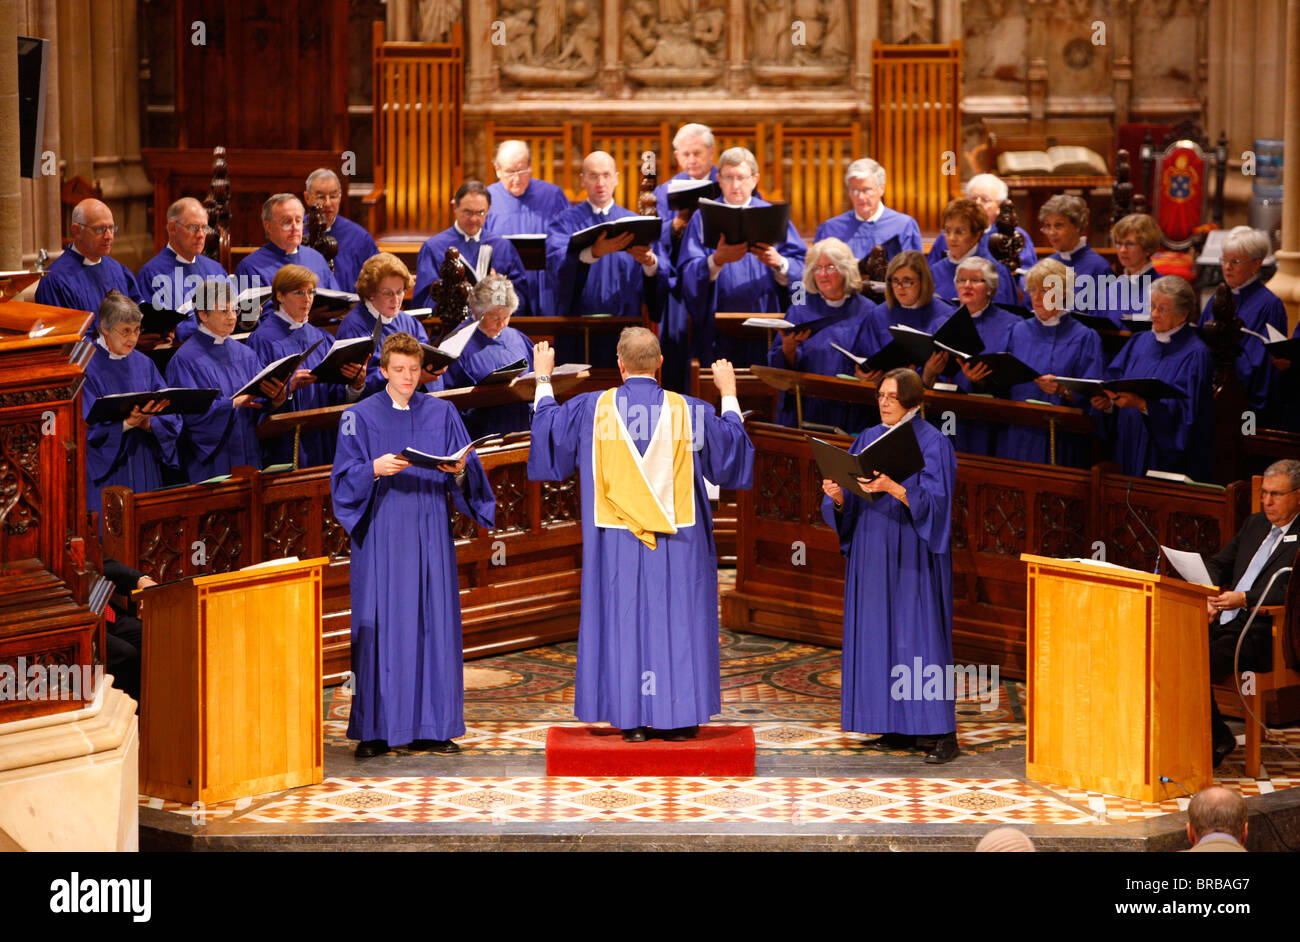 St. Andrew's cathedral choir, Sydney, New South Wales, Australia - Stock Image